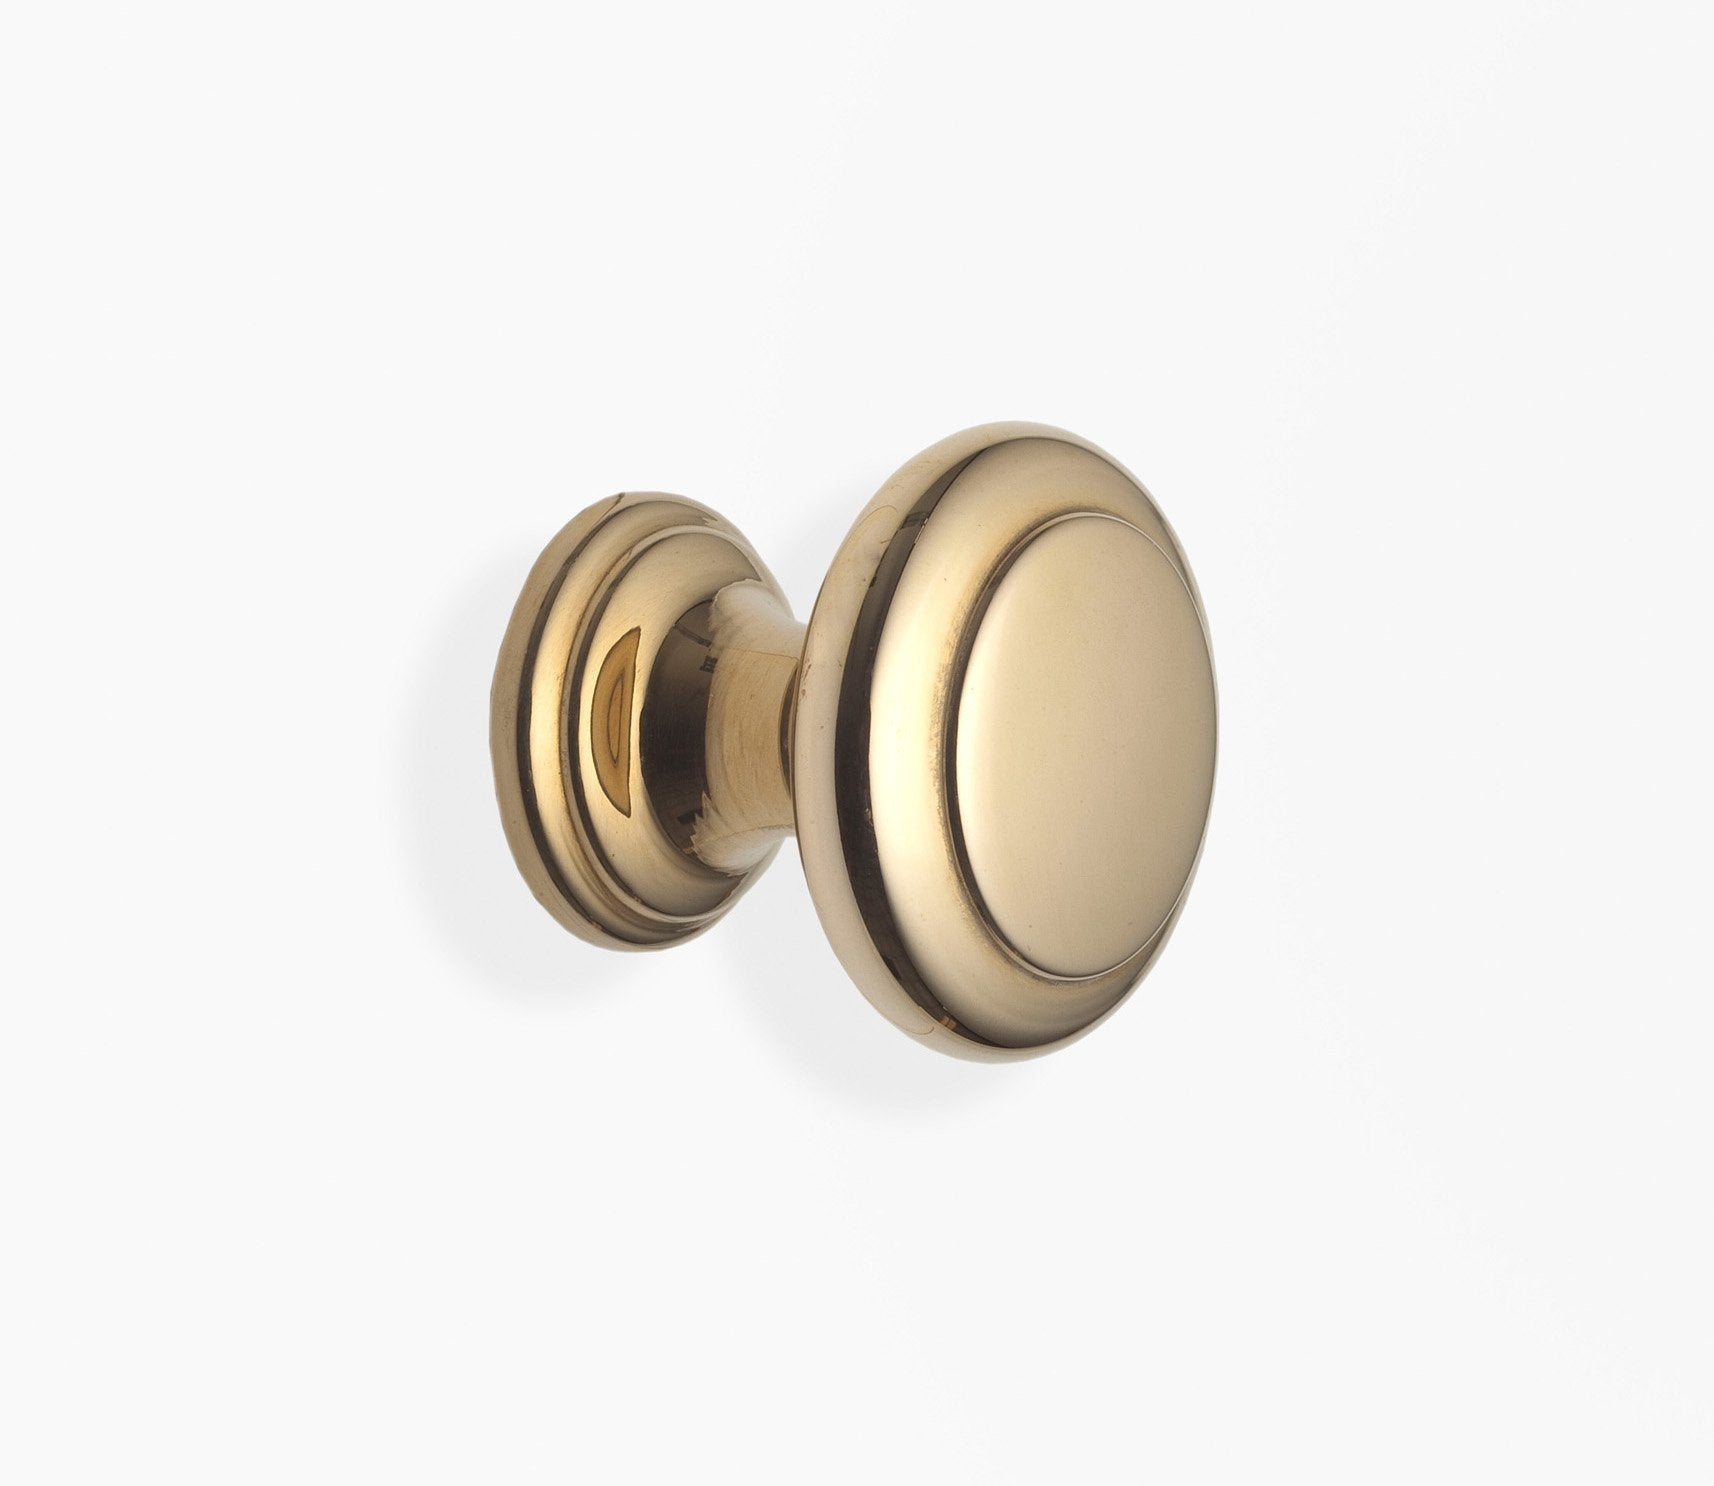 Knob 085 Medium Product Image 1